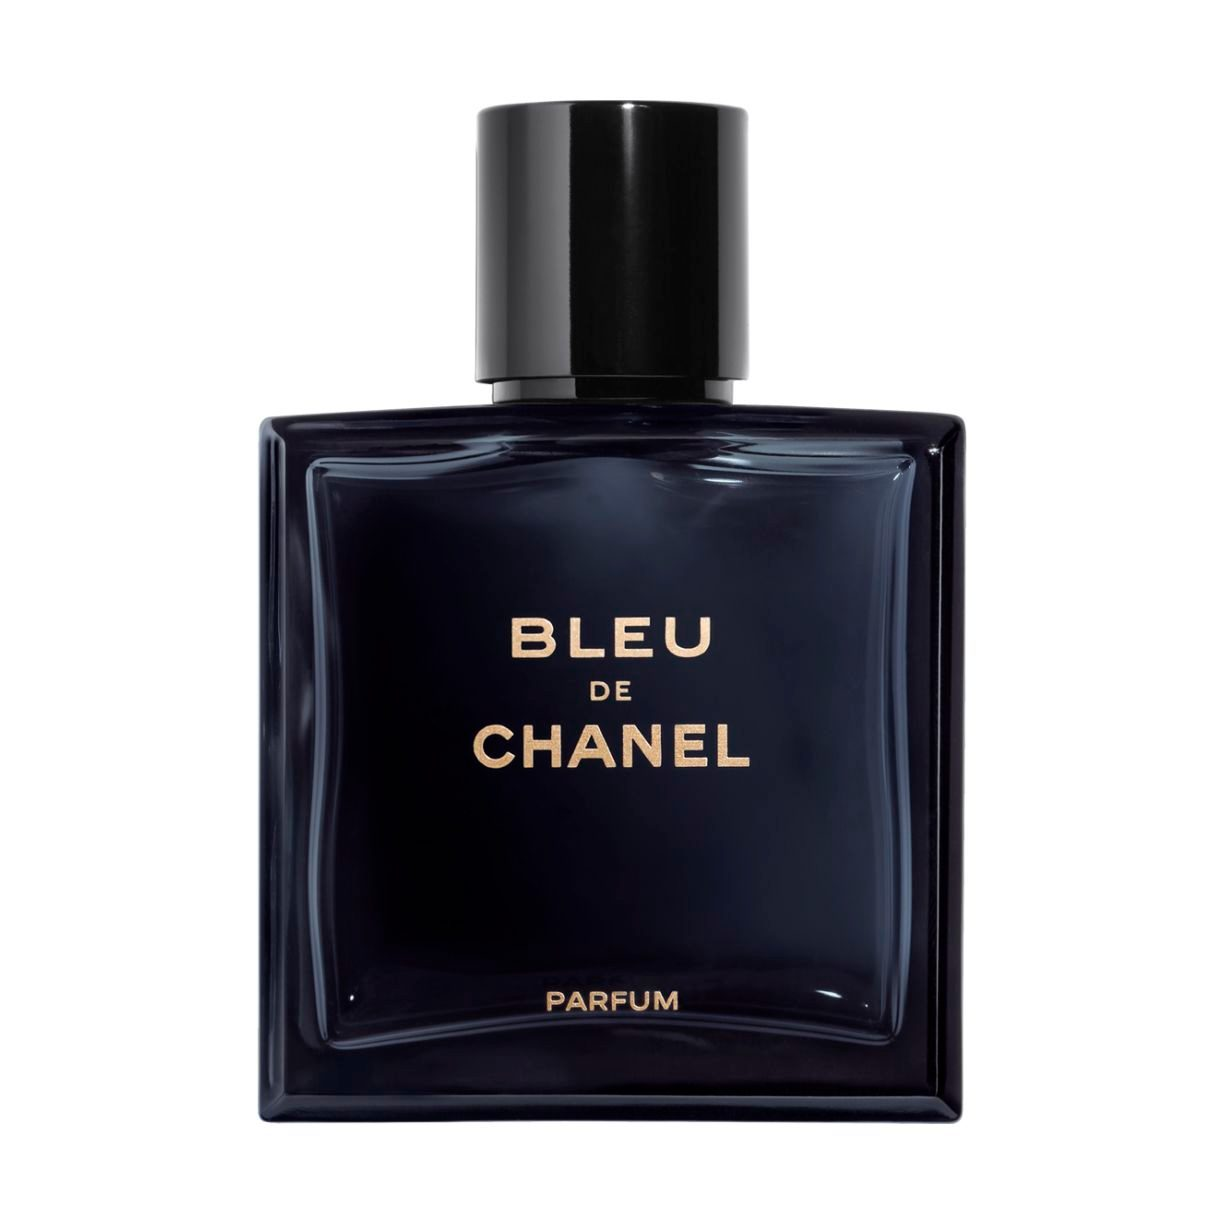 BLEU DE CHANEL PARFUM SPRAY 50ML